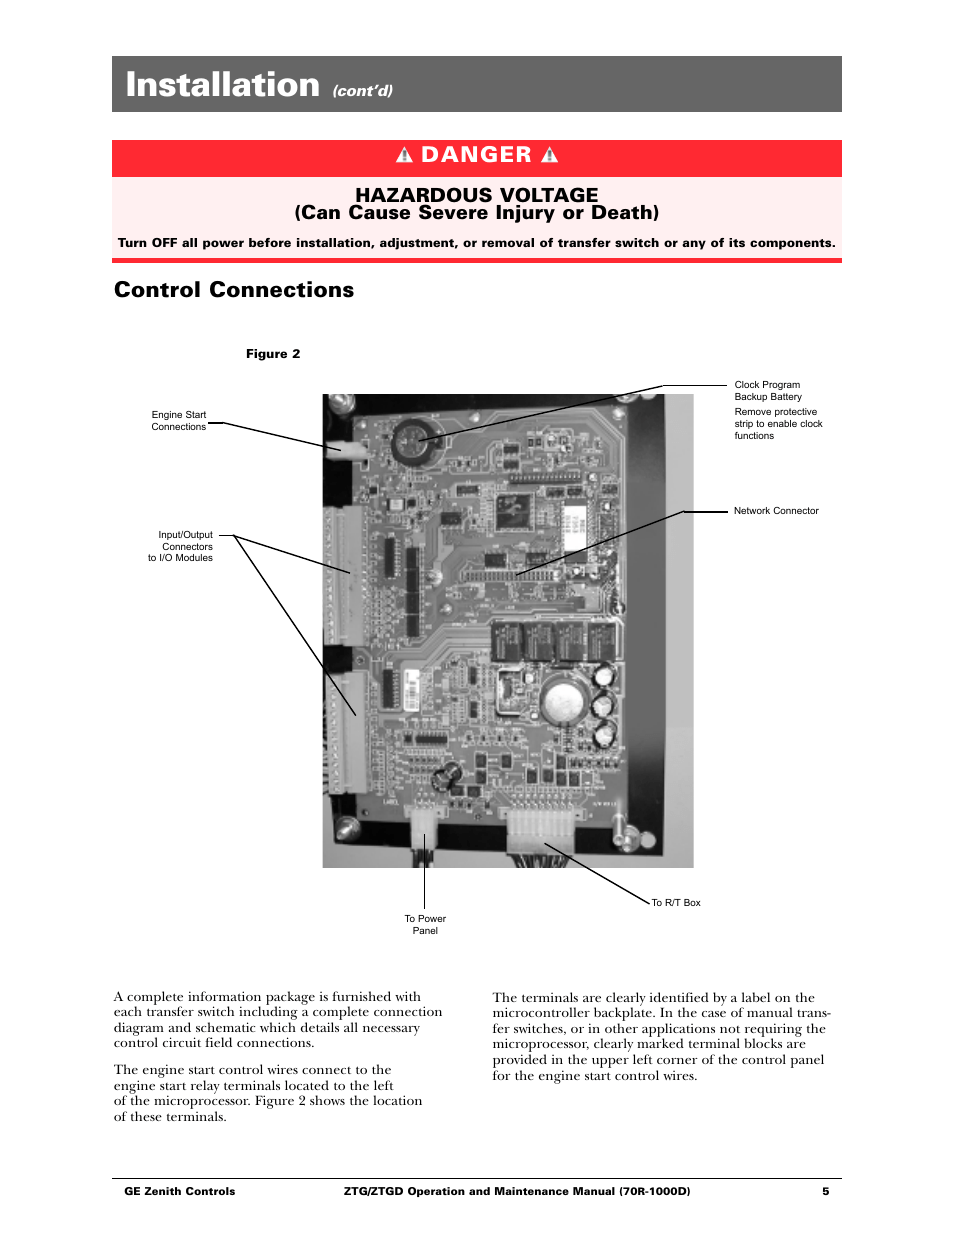 hight resolution of installation danger control connections ge ztgd series transfer switches 40 3000 amps user manual page 5 36